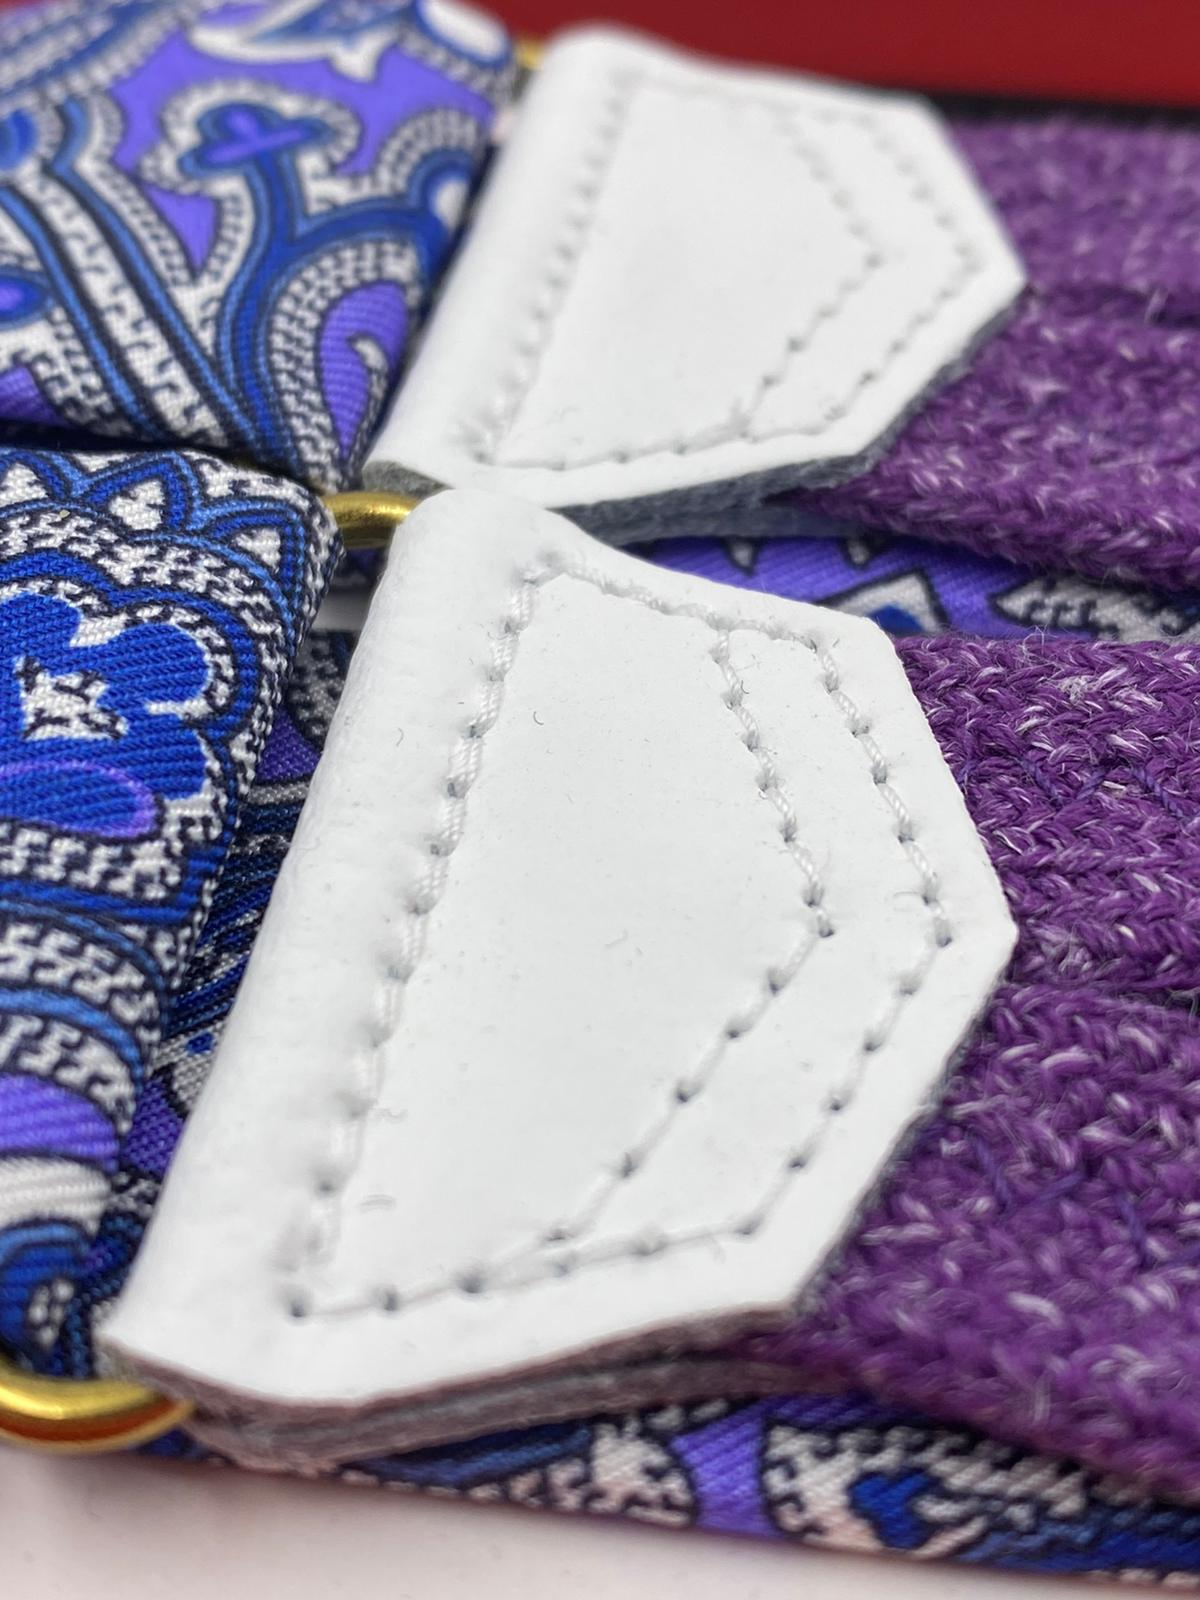 Albert Thurston for Cruciani & Bella Made in England Adjustable Sizing 40 mm braces Keyte Silk   Purple Blue and White Flower Motif Braid ends Y-Shaped Nickel Fitting 3704 XL